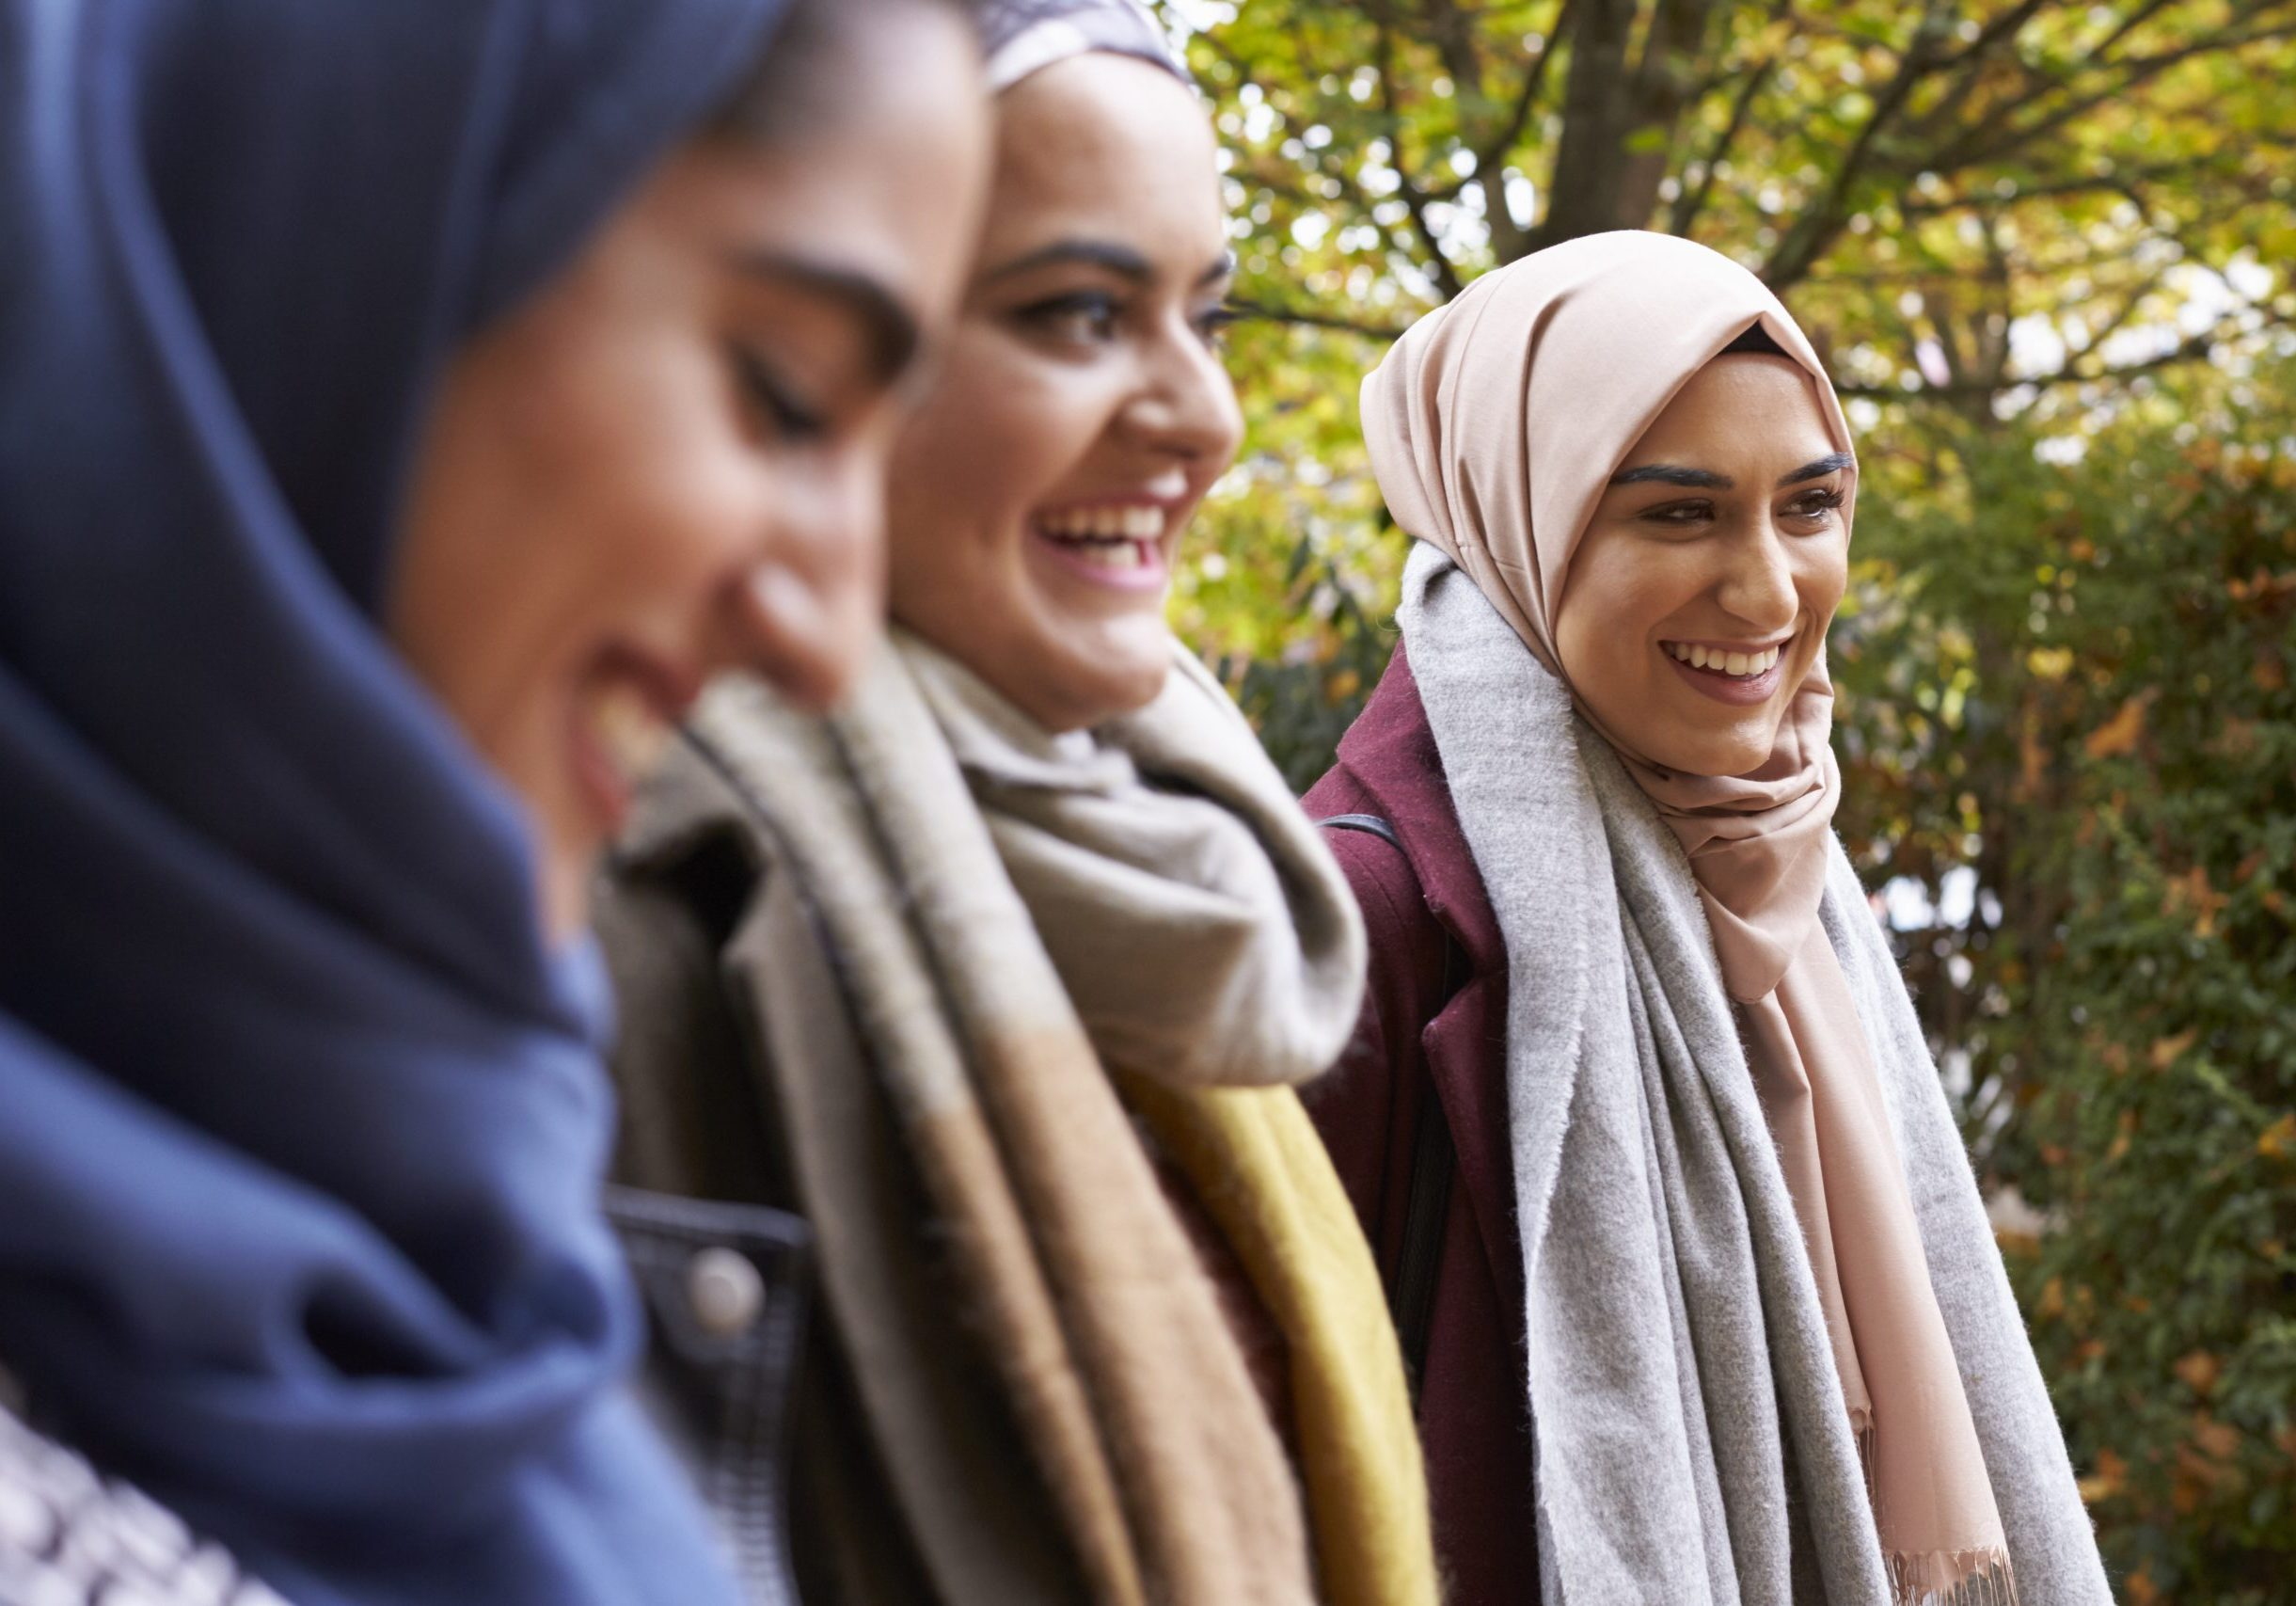 British Muslim Female Friends Meeting In Urban Environment